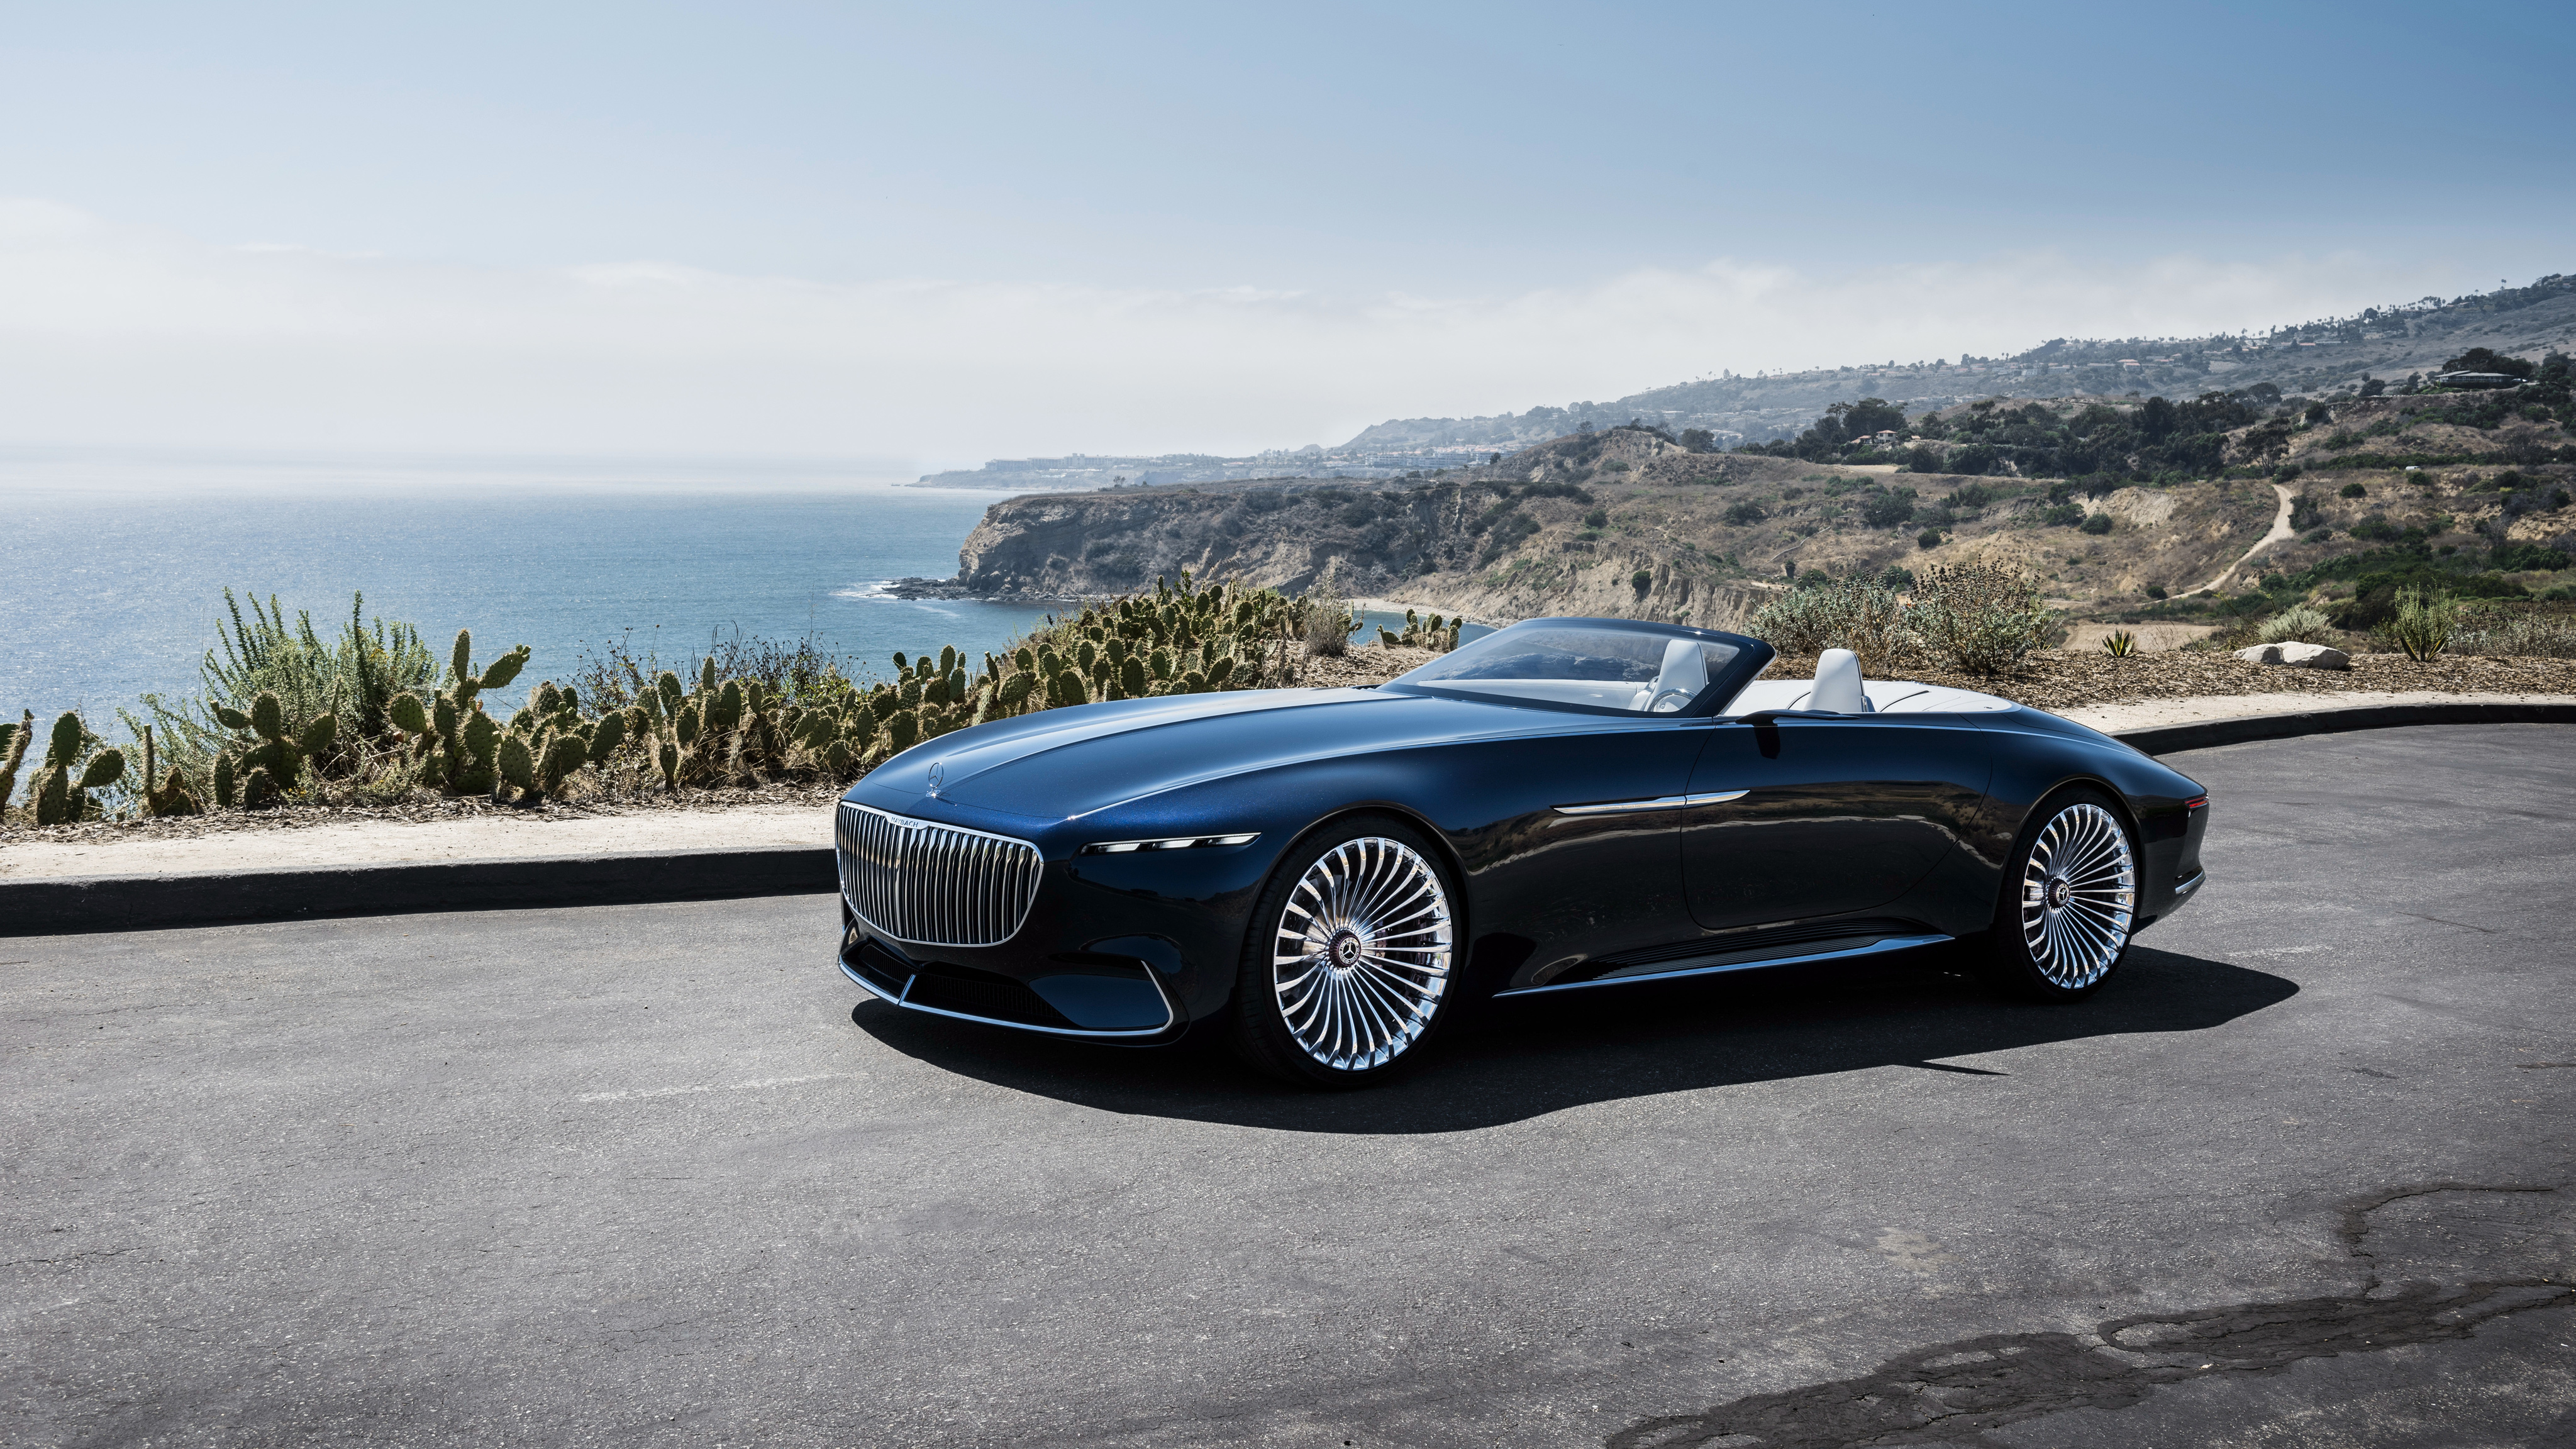 2018 vision mercedes maybach 6 cabriolet 5 wallpaper hd car wallpapers id 8279. Black Bedroom Furniture Sets. Home Design Ideas